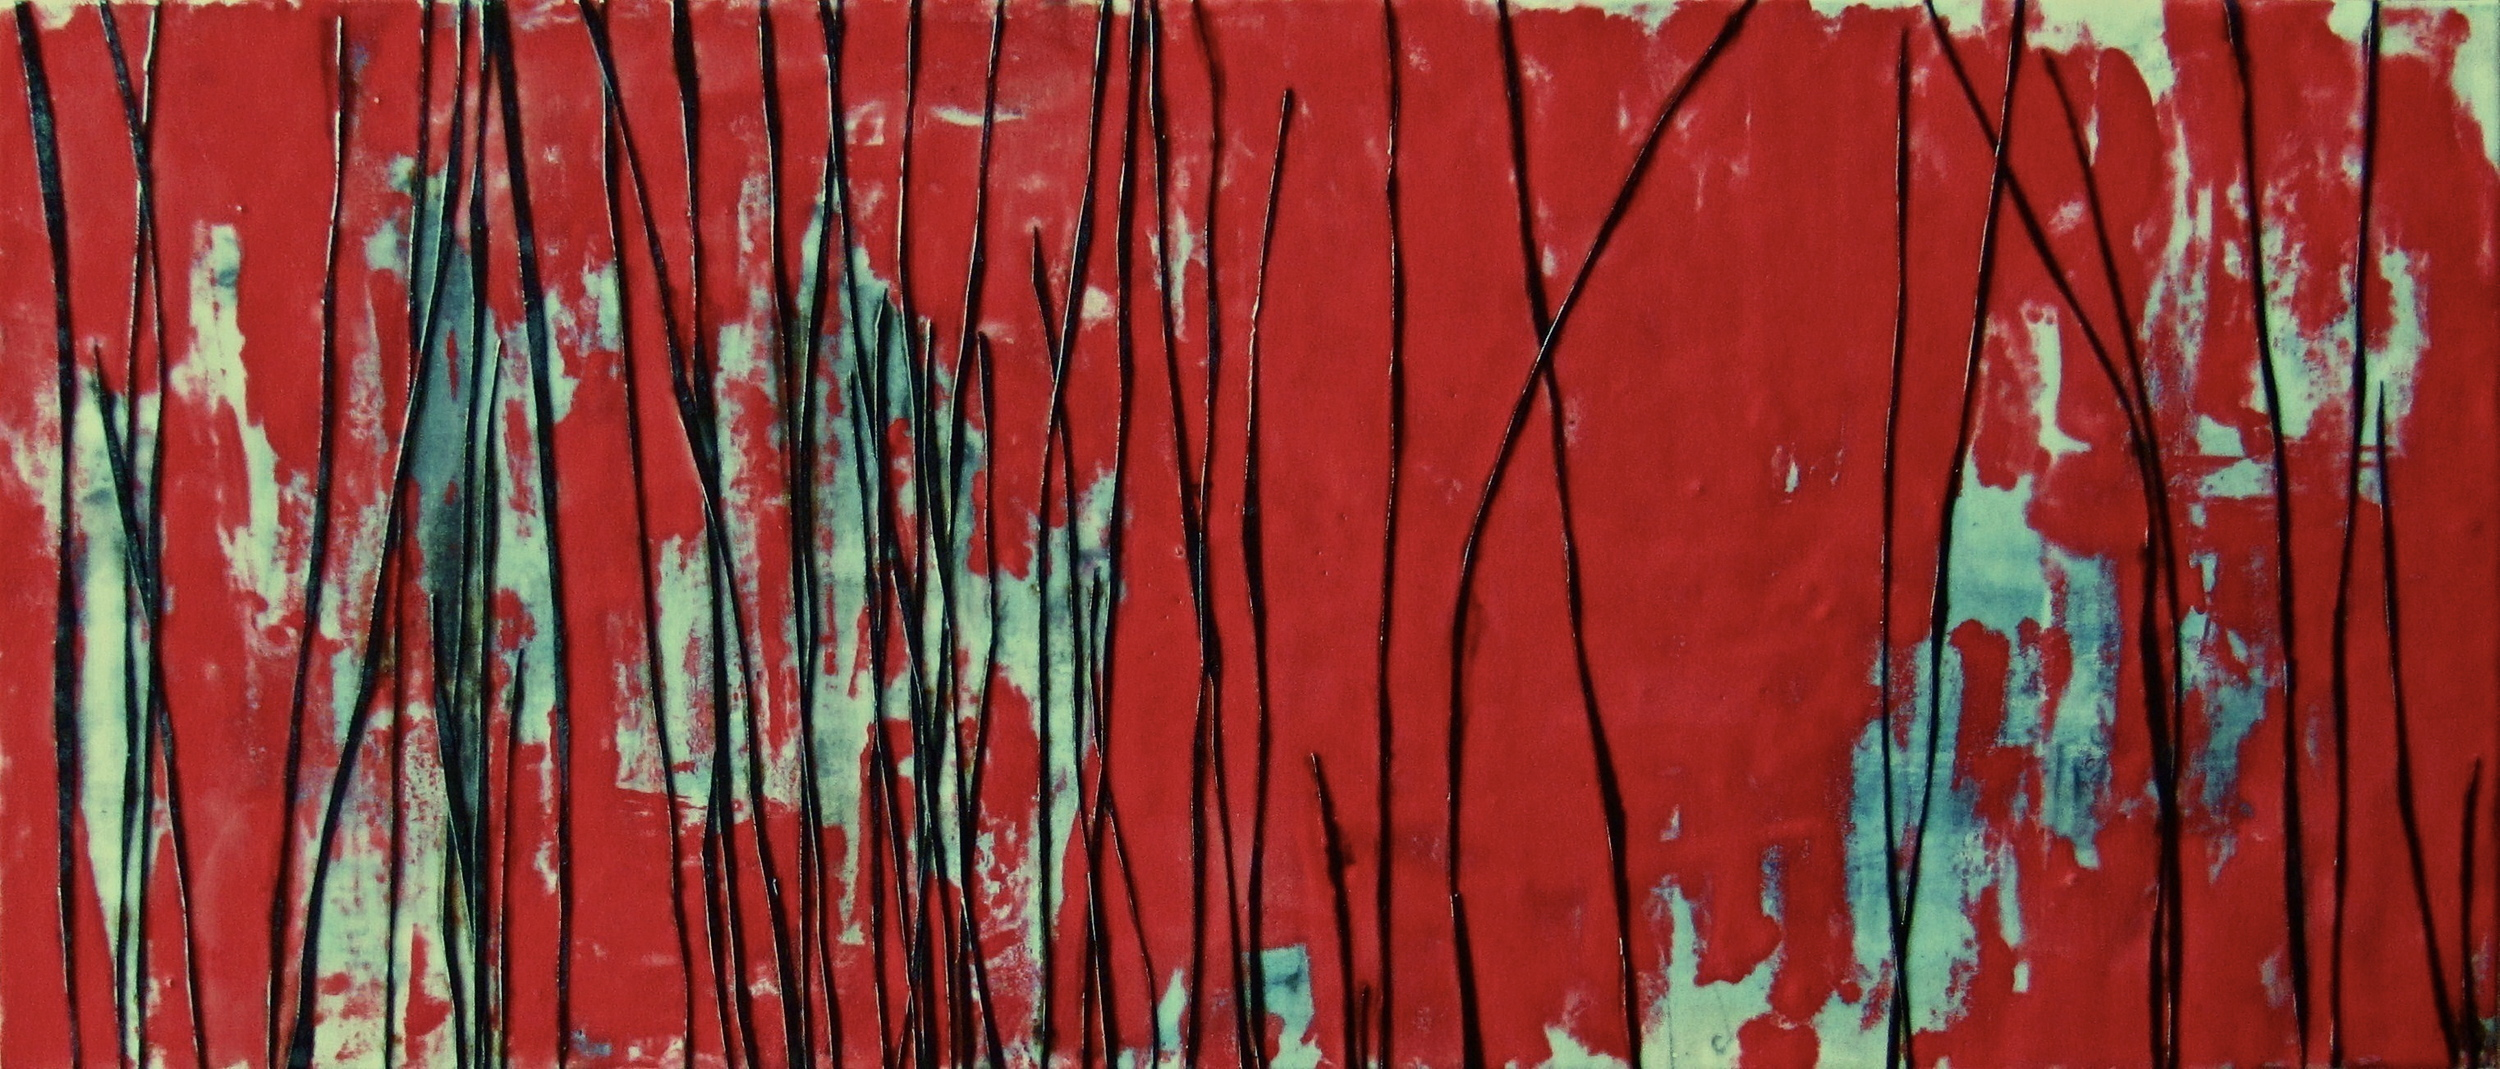 Liminal, 2008 / Encaustic on canvas on wood panel, 14 x 33 / Sold